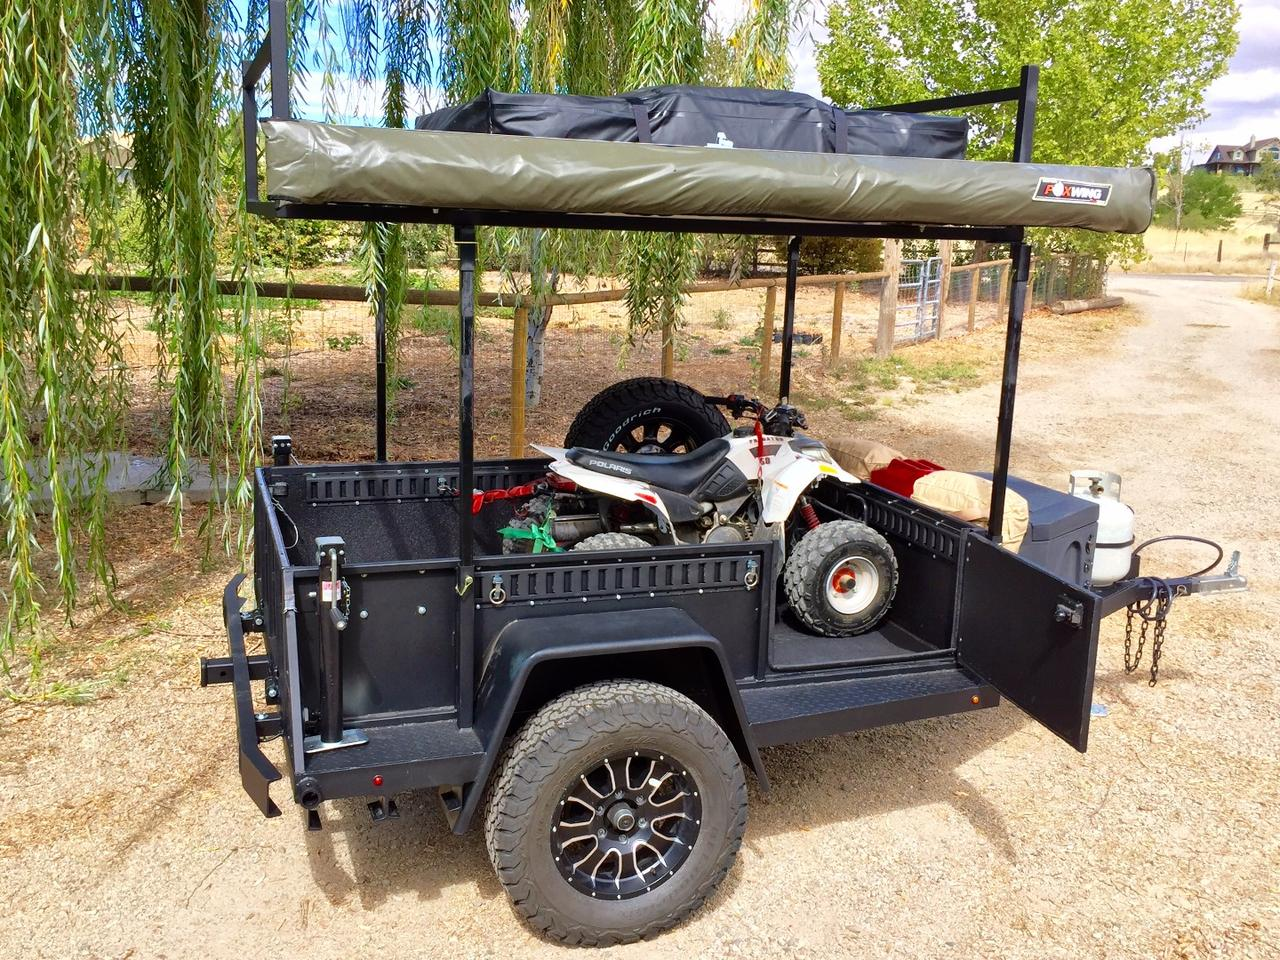 With just its bed and roof-top tent platform, the UGOATScout serves as a gear hauler and basic camping trailer